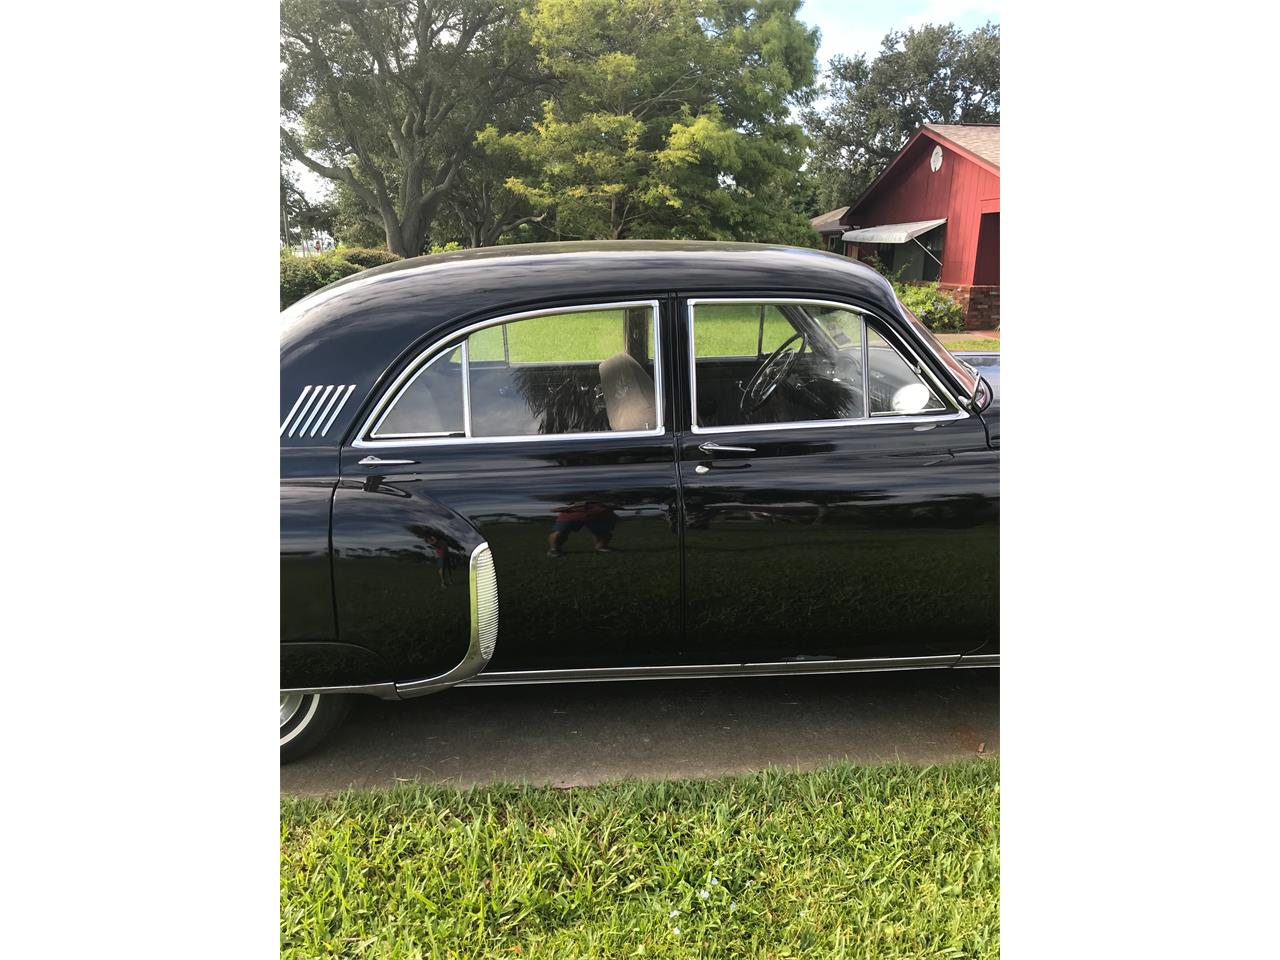 1949 Cadillac 4-Dr Sedan for sale in Land O Lakes, FL – photo 11